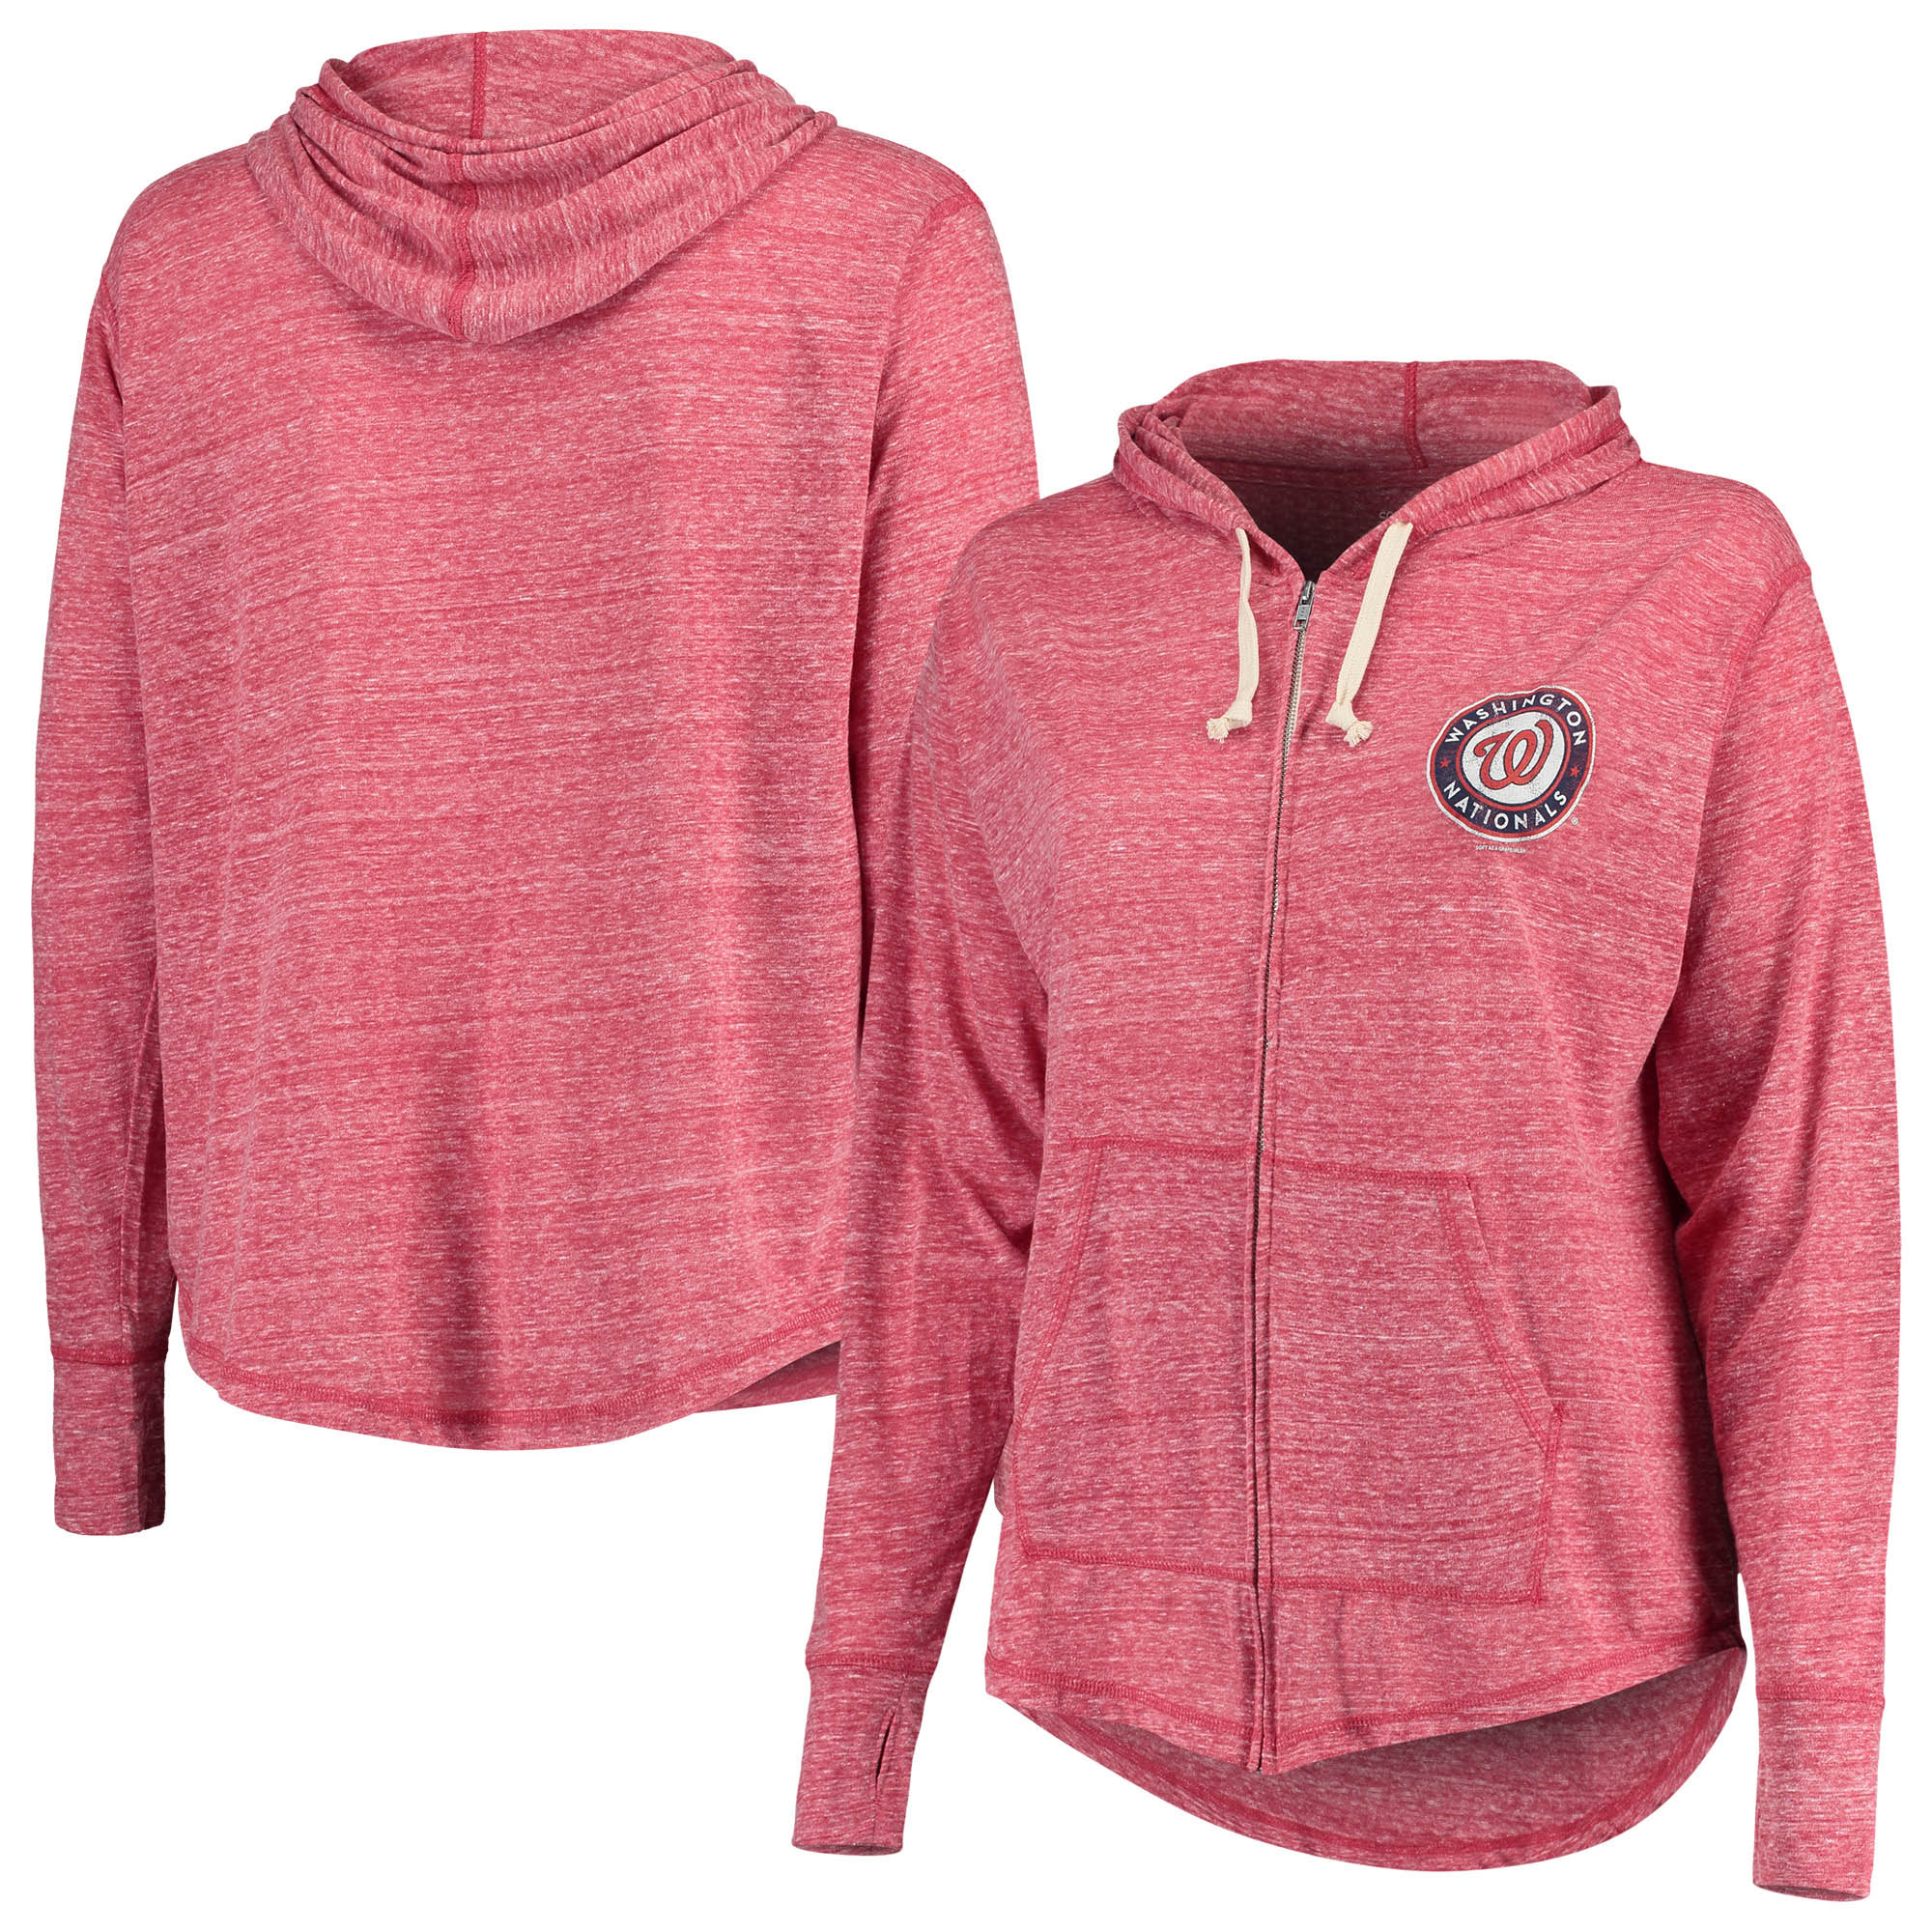 Washington Nationals Soft as a Grape Women's Plus Size Full-Zip Hoodie - Red